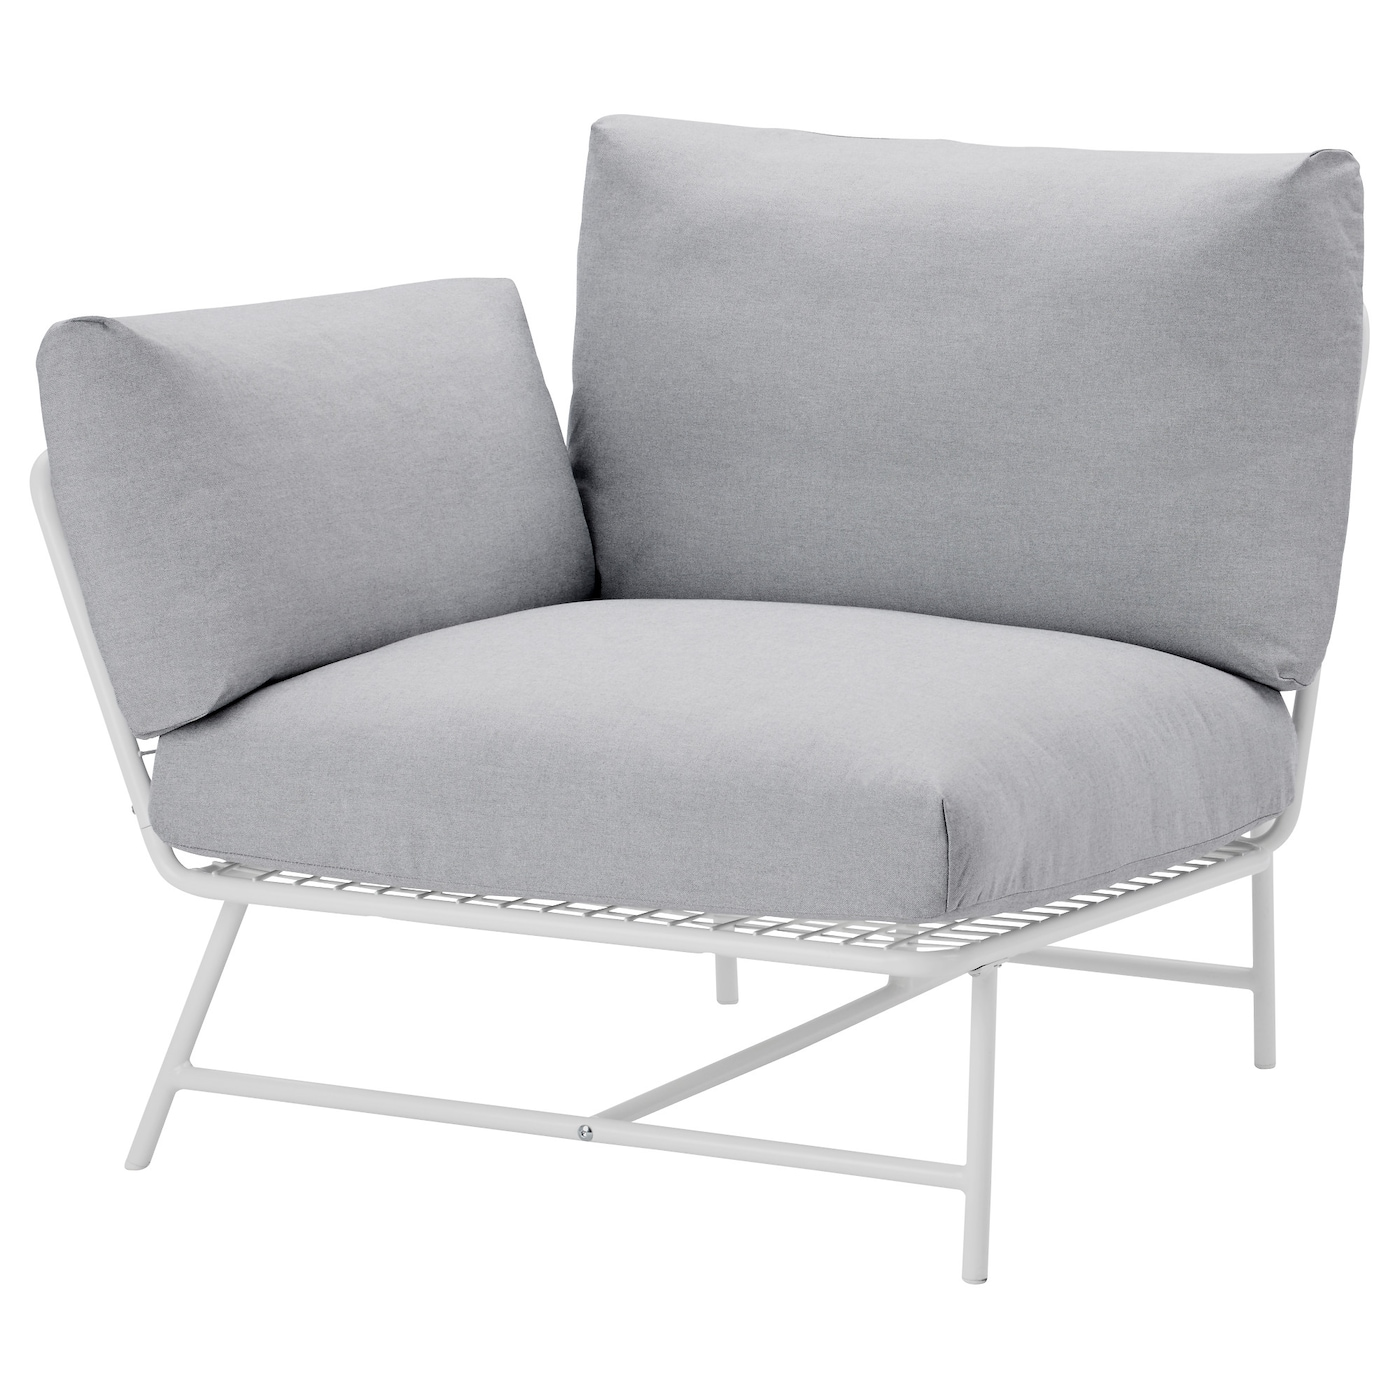 ikea ps 2017 corner easy chair with cushions white grey ikea. Black Bedroom Furniture Sets. Home Design Ideas